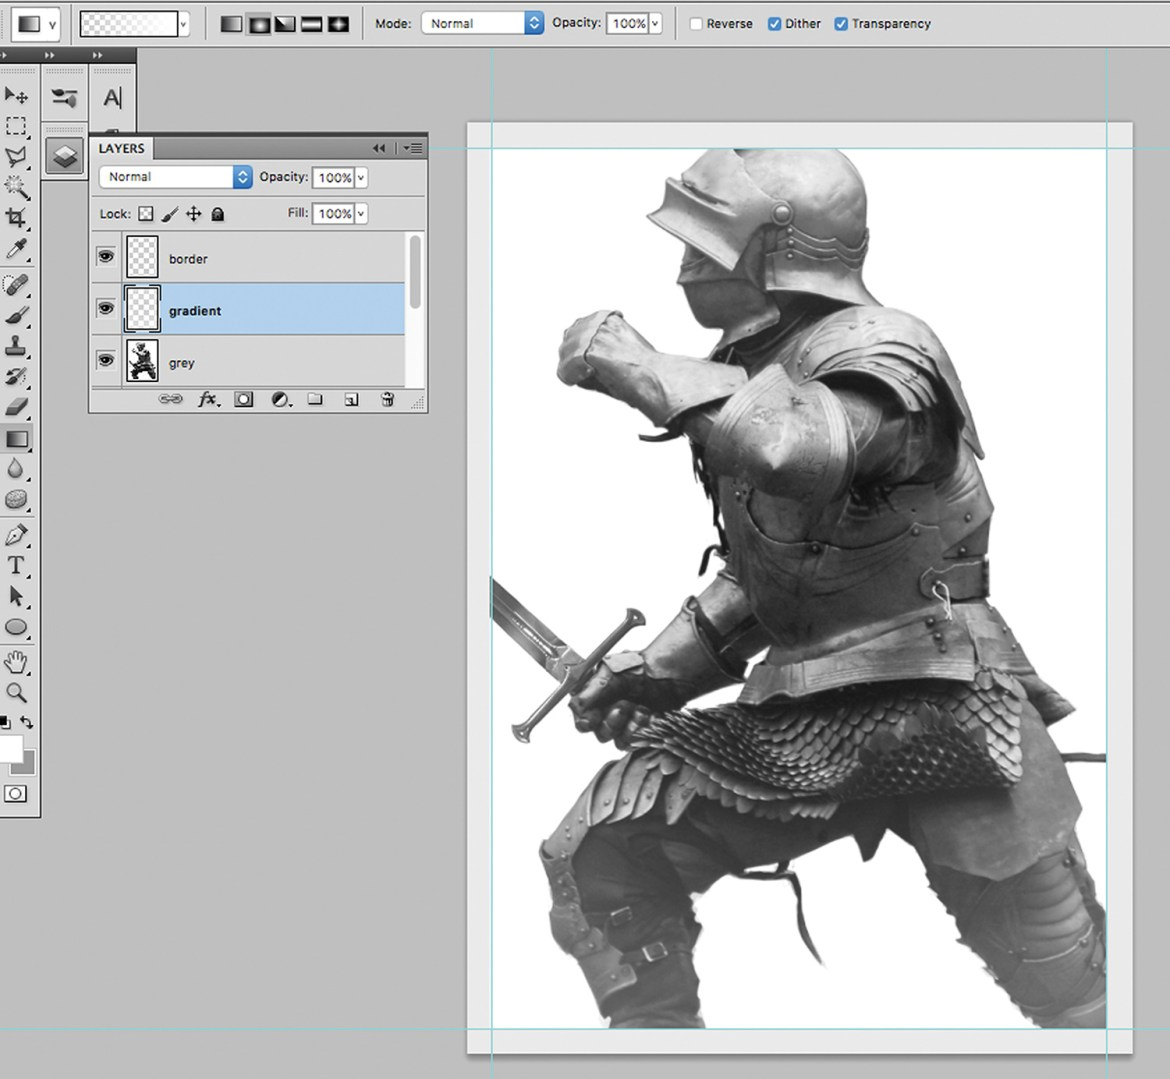 Knight image in Photoshop, in greyscale, with a highlight on the arm, shoulder and head